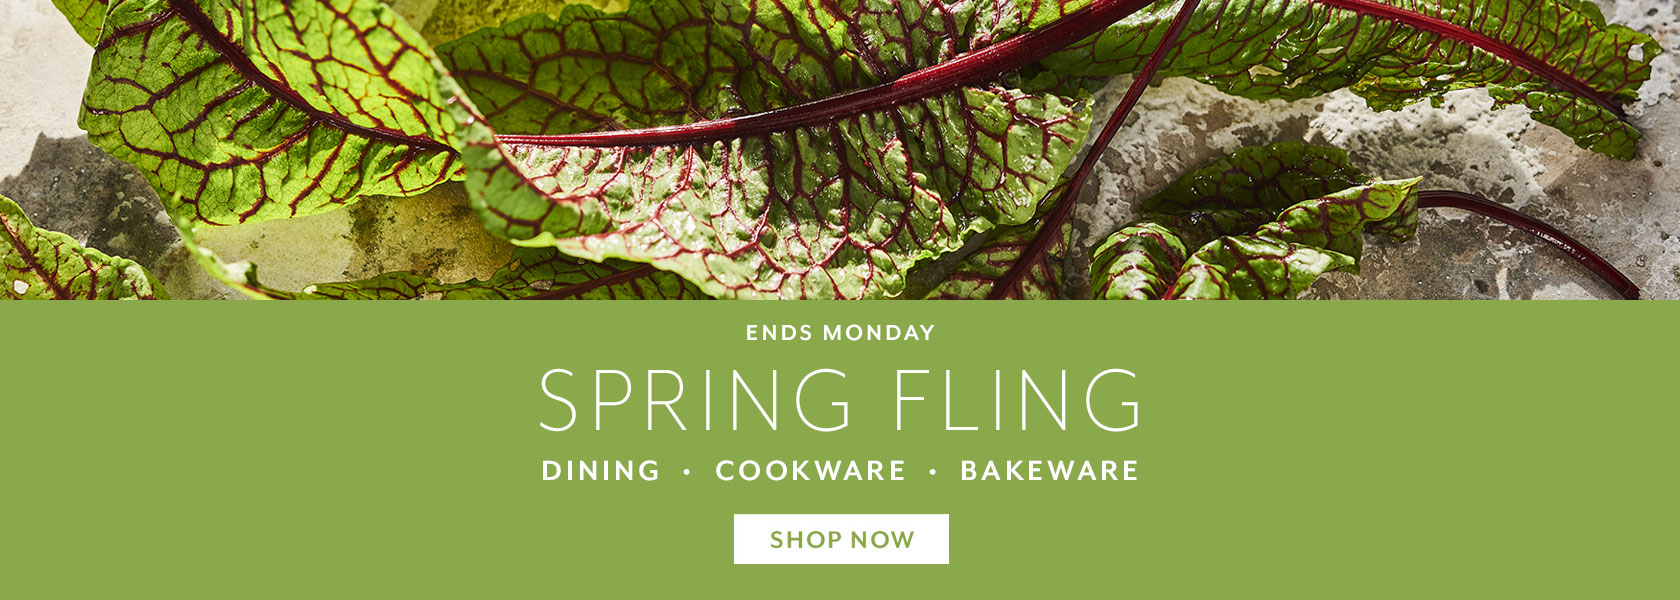 Ends Monday Spring Fling Event, save on dining, cookware and bakeware.